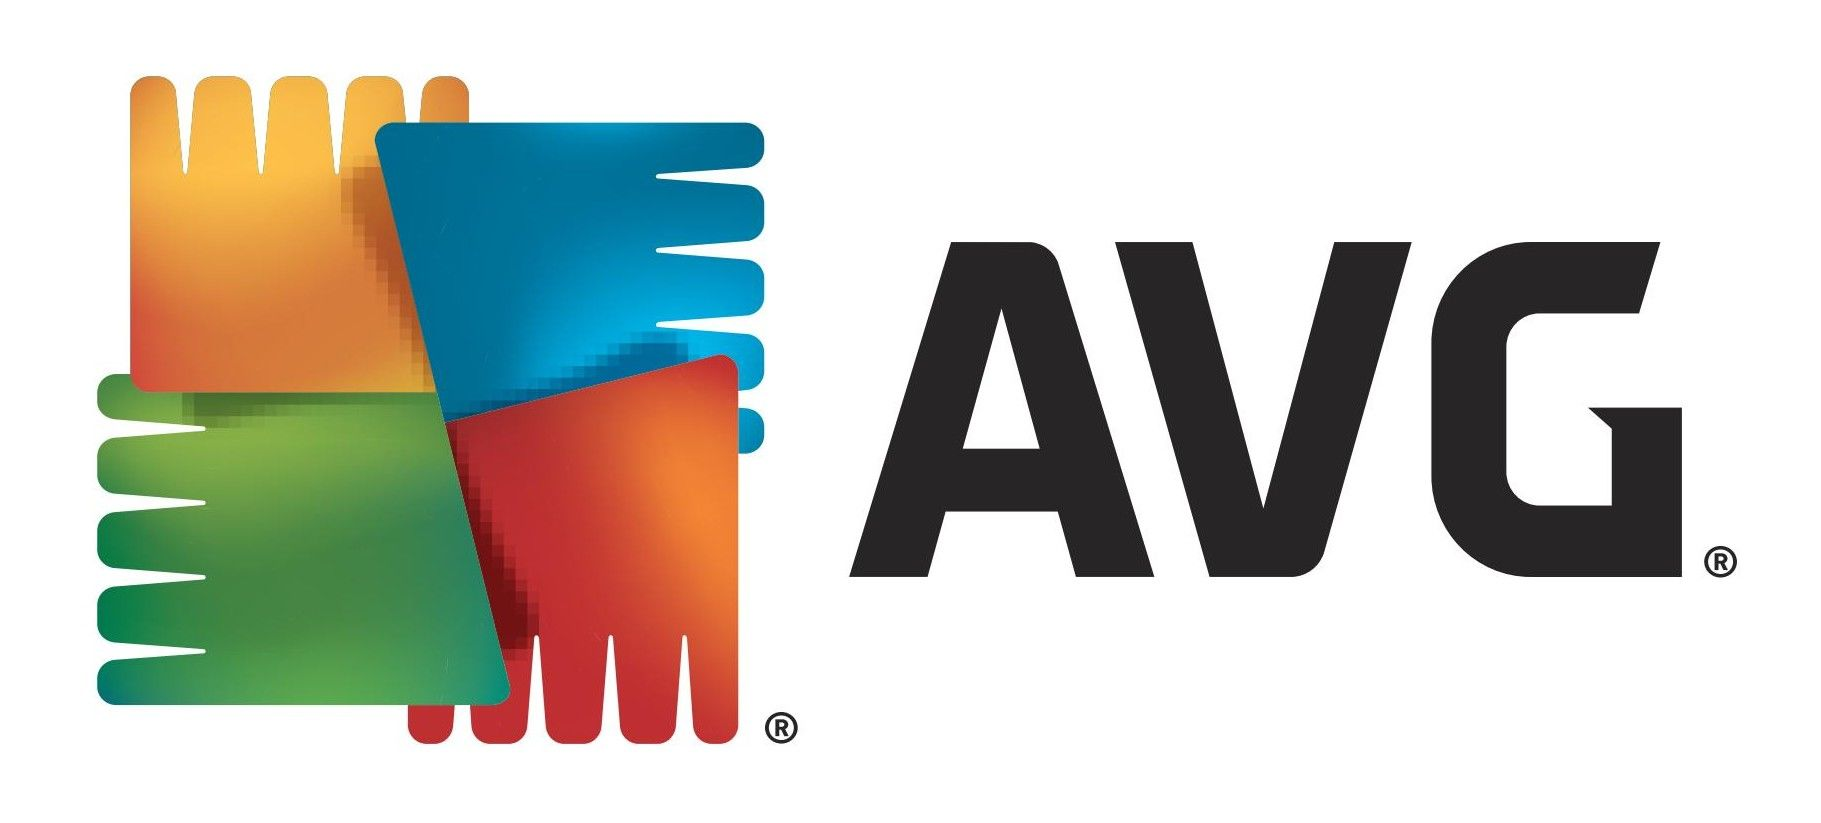 AVG Technologies Logo [EPS File] Vector EPS Free Download, Logo, Icons, Brand Emblems